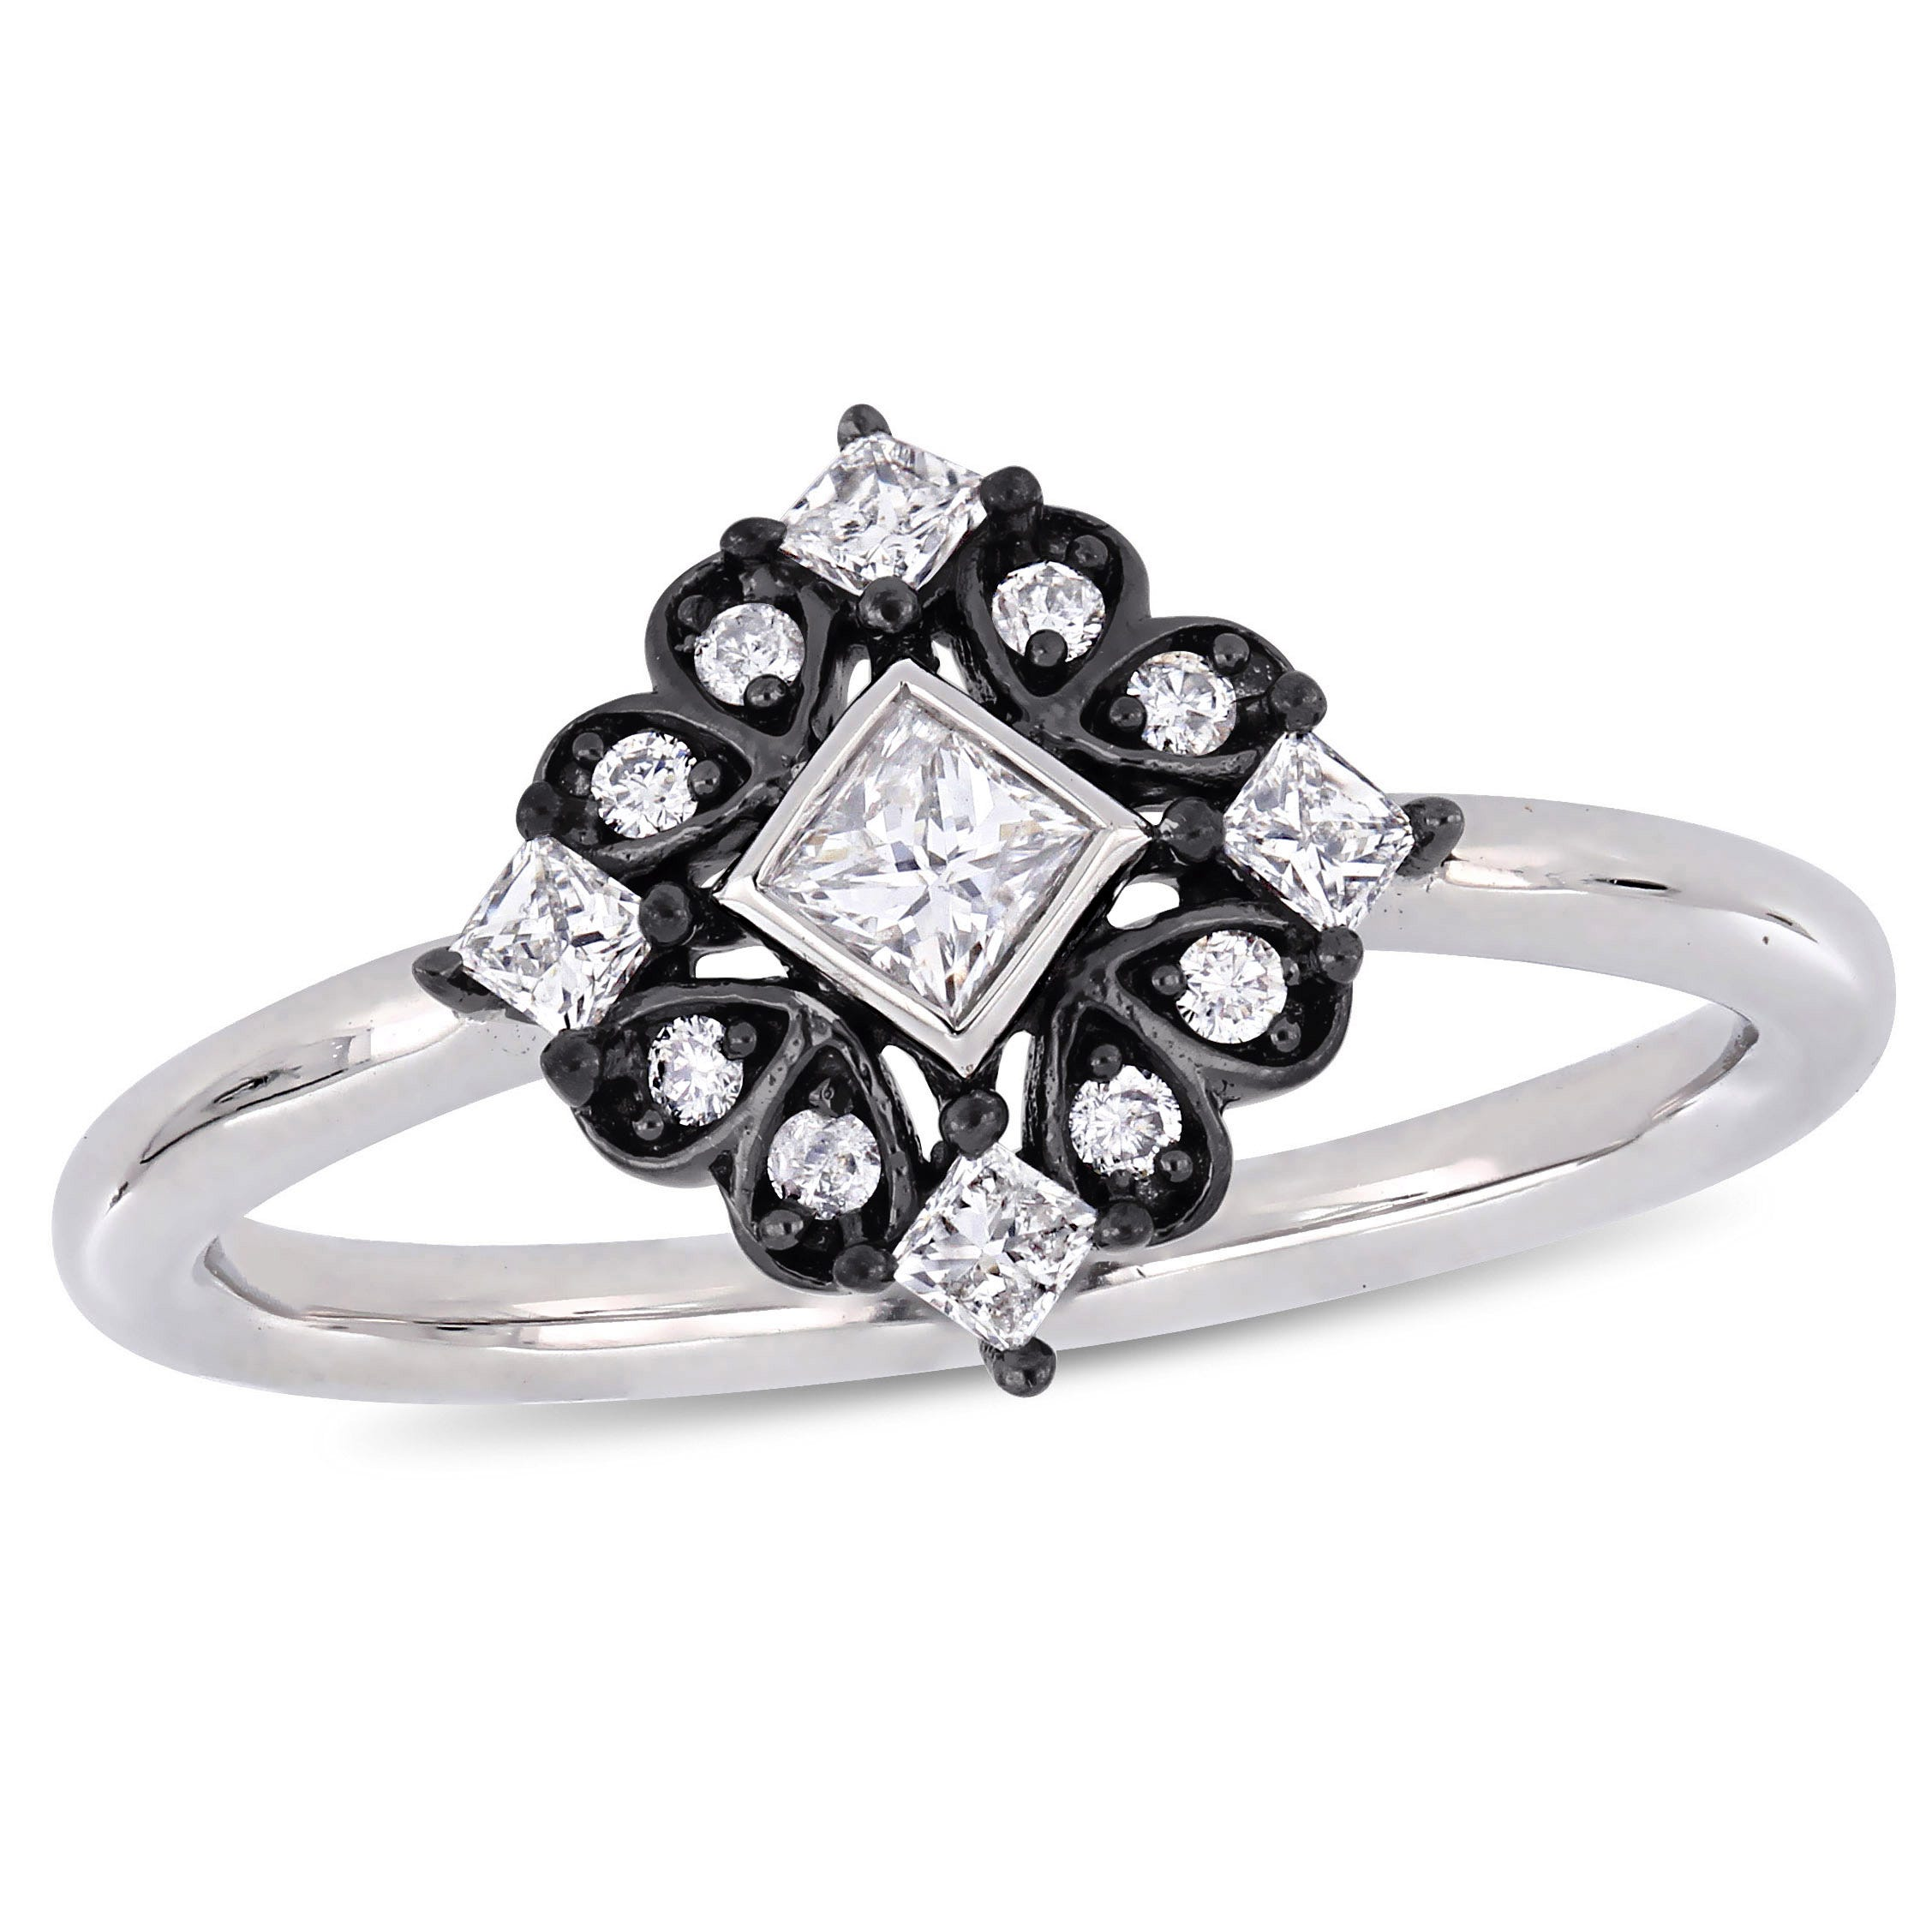 Everly Princess & Round 1/3ctw. Diamond Ring in 10k White Gold